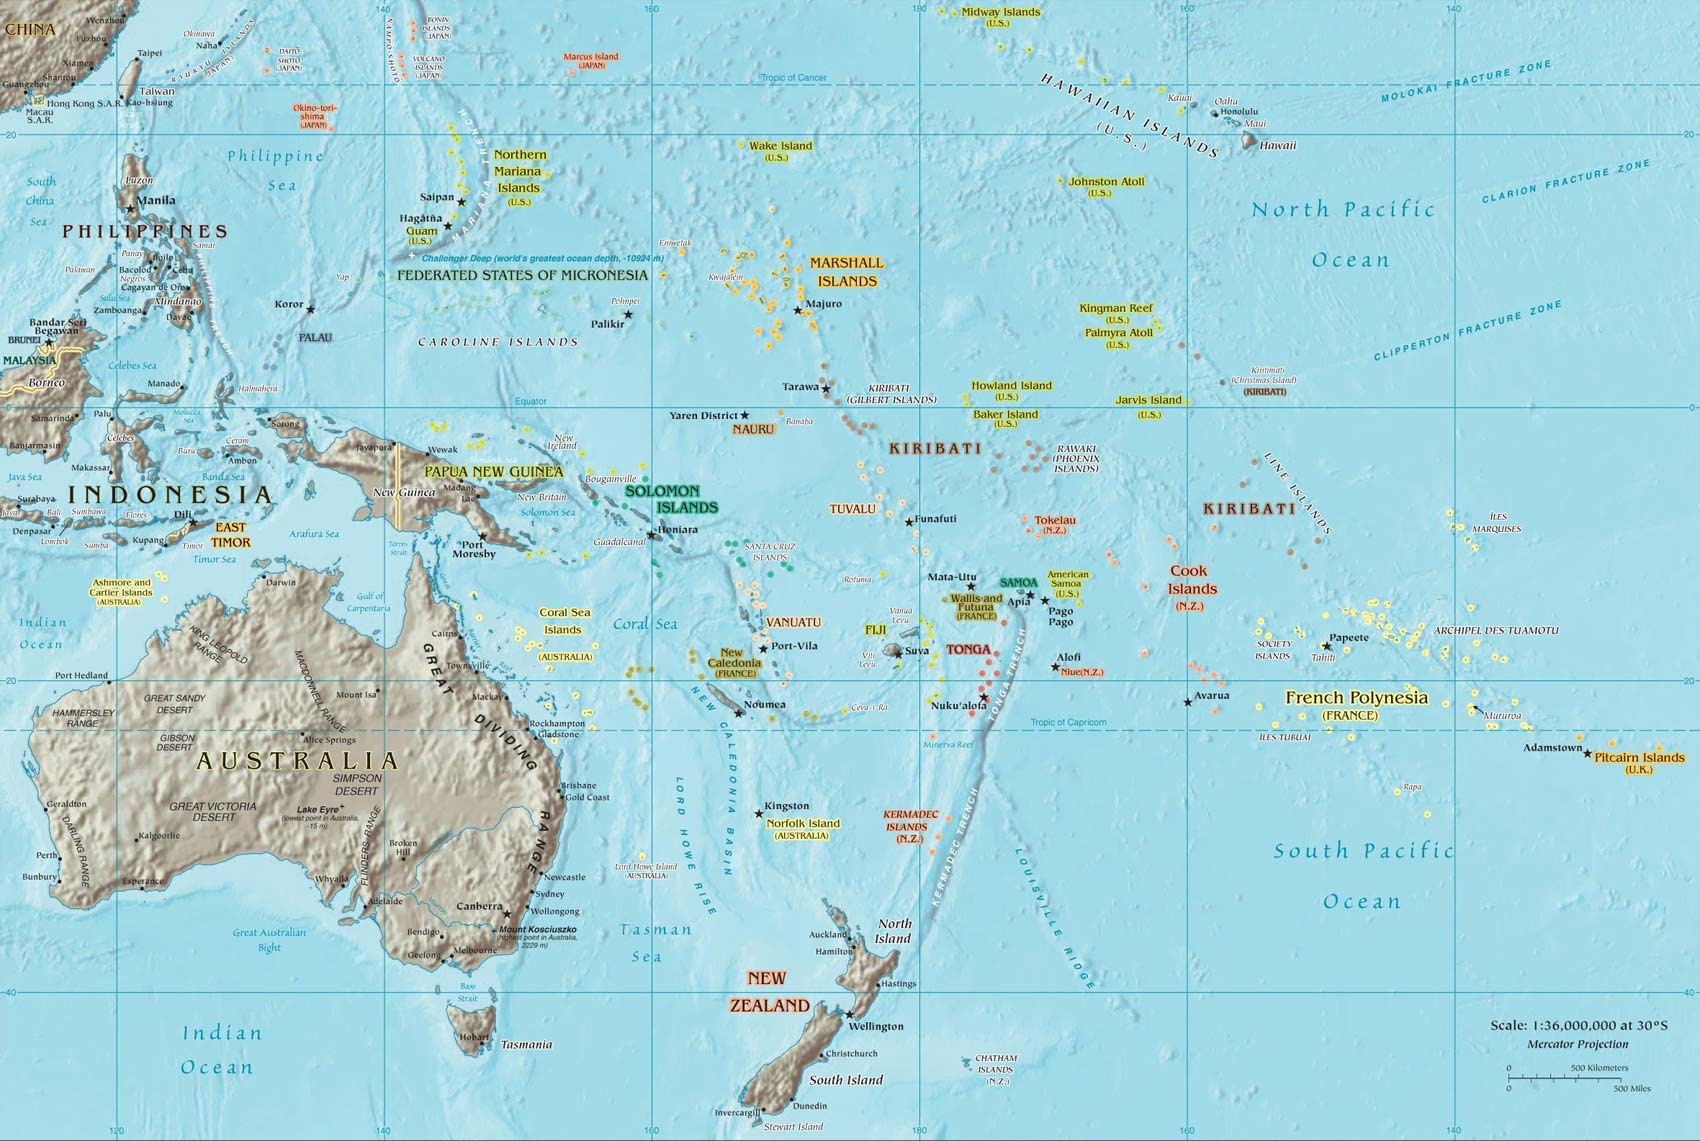 South Pacific Islands Surf Trip Destintions Map